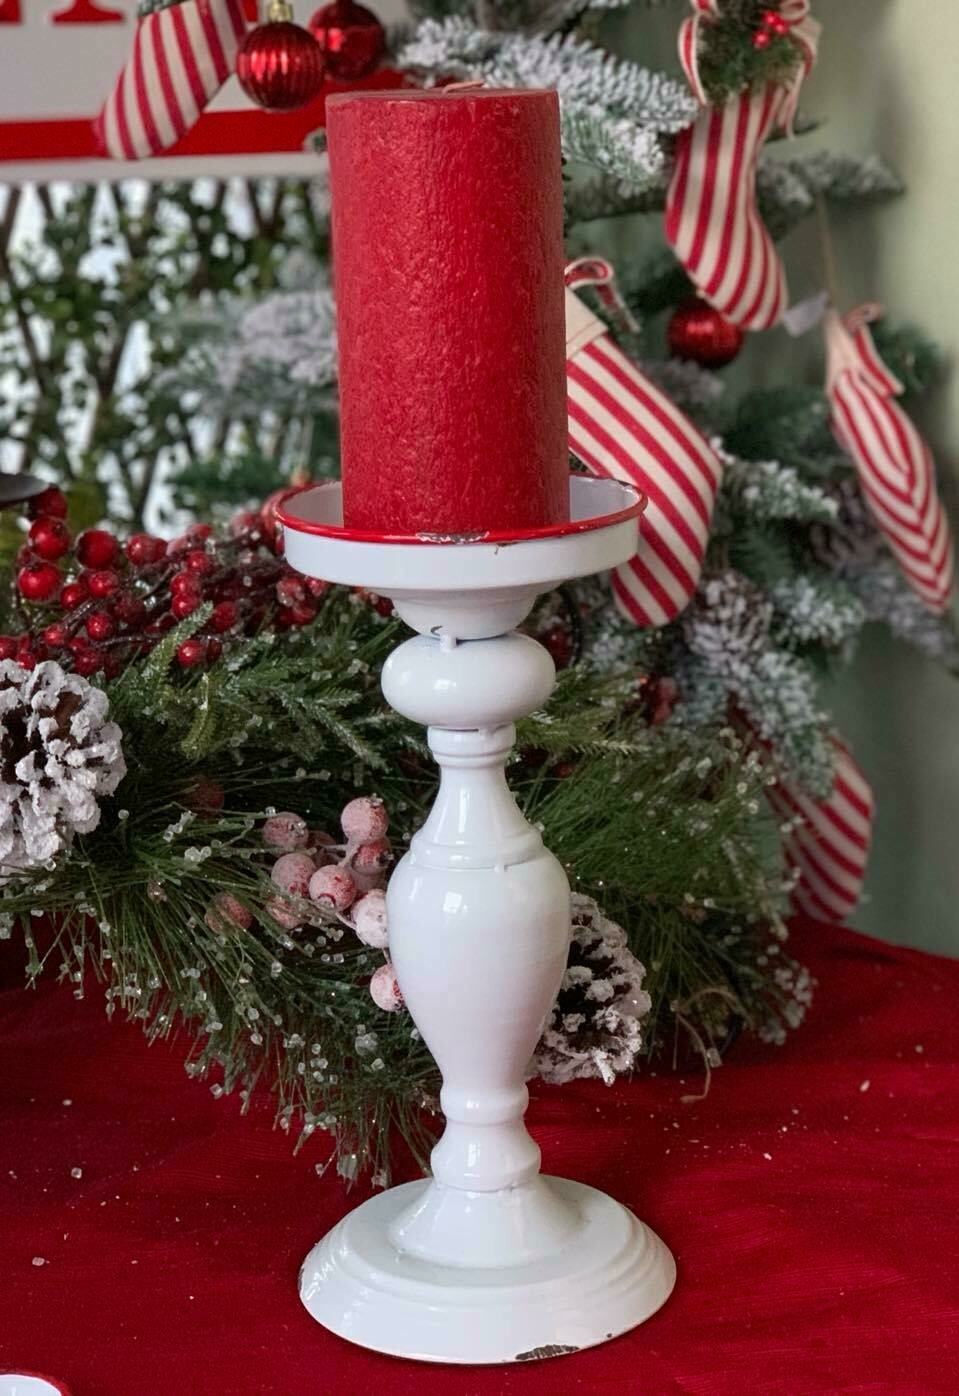 Red and White Enamelware Candlestick